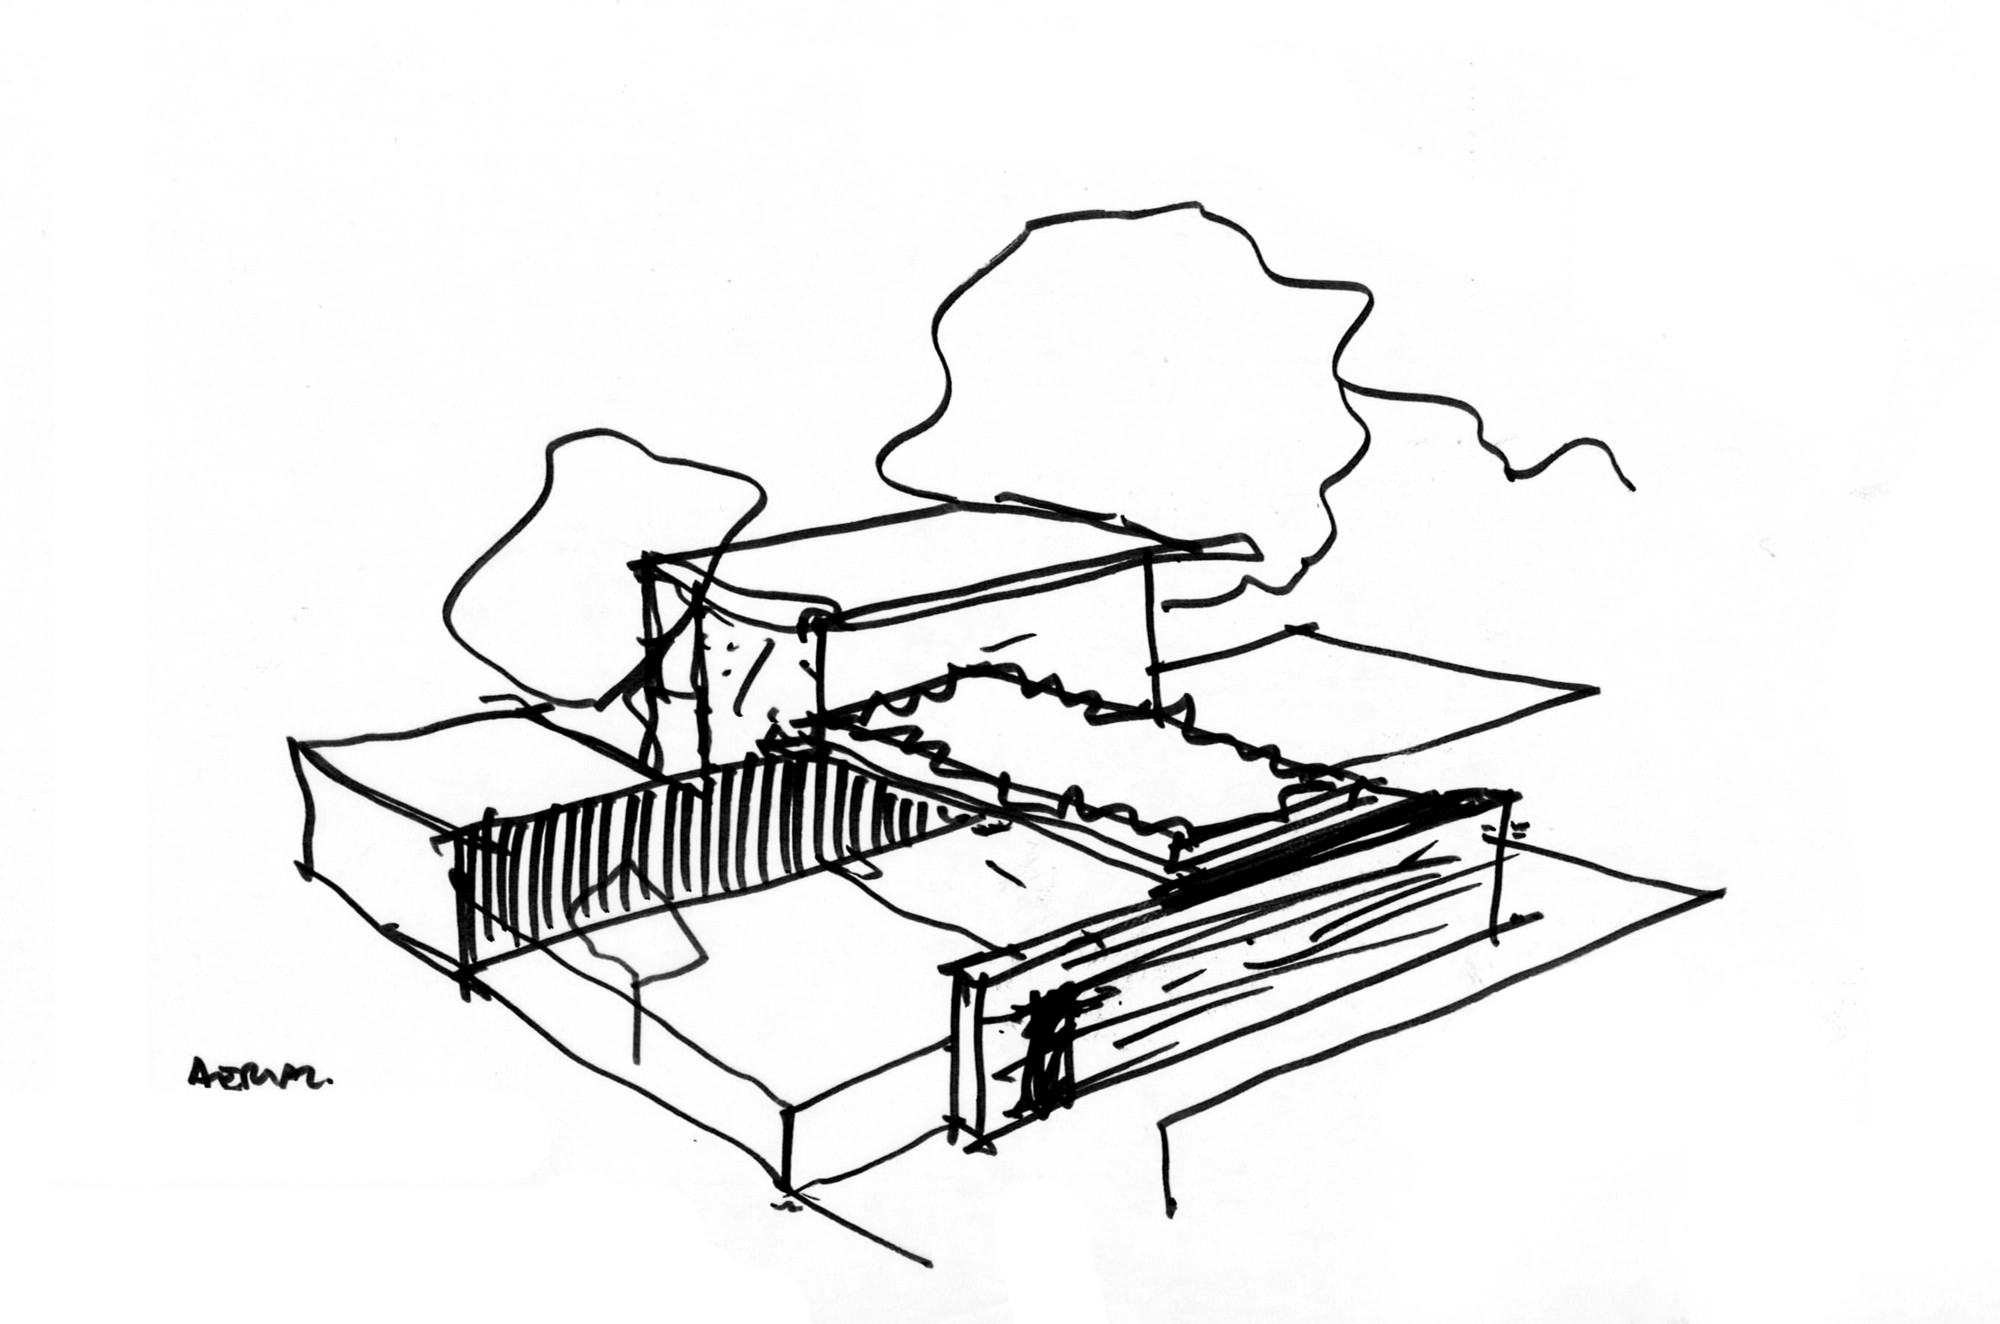 Gmc Drawing At Free For Personal Use 2003 Starter Diagram 2000x1324 Gallery Of Hunters Hill House Arkhefield